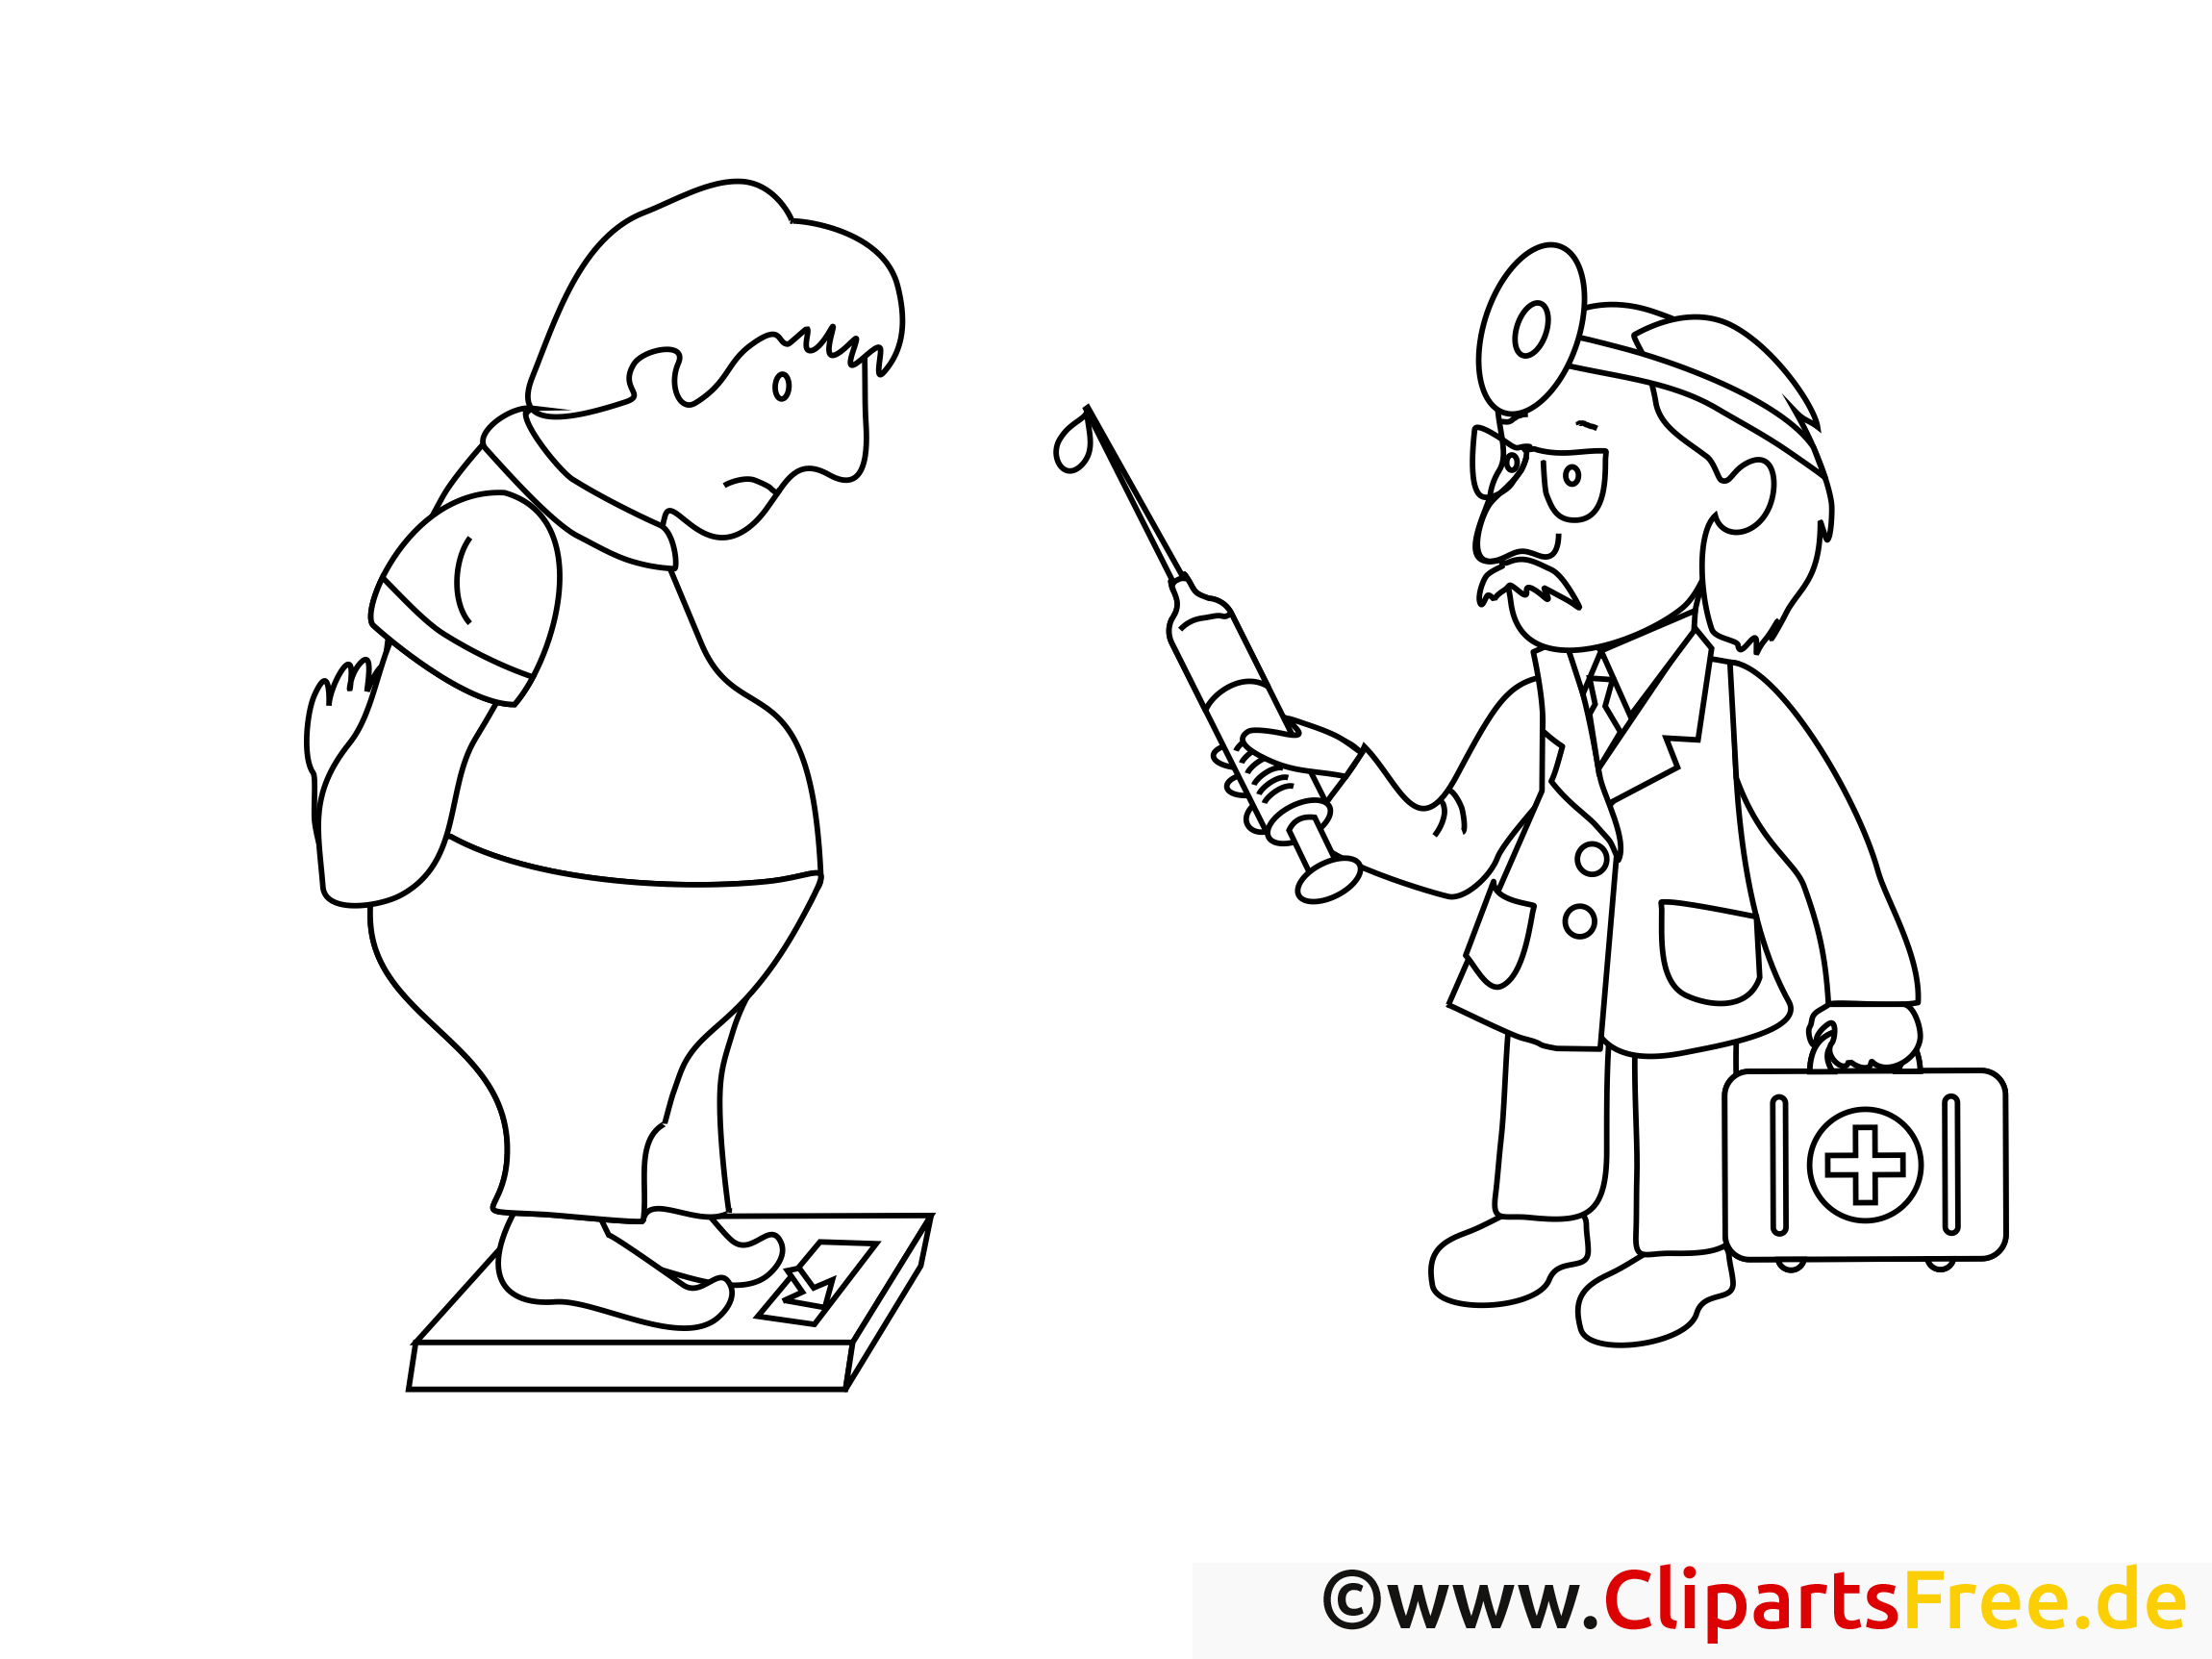 Surpoids illustration – Coloriage santé cliparts